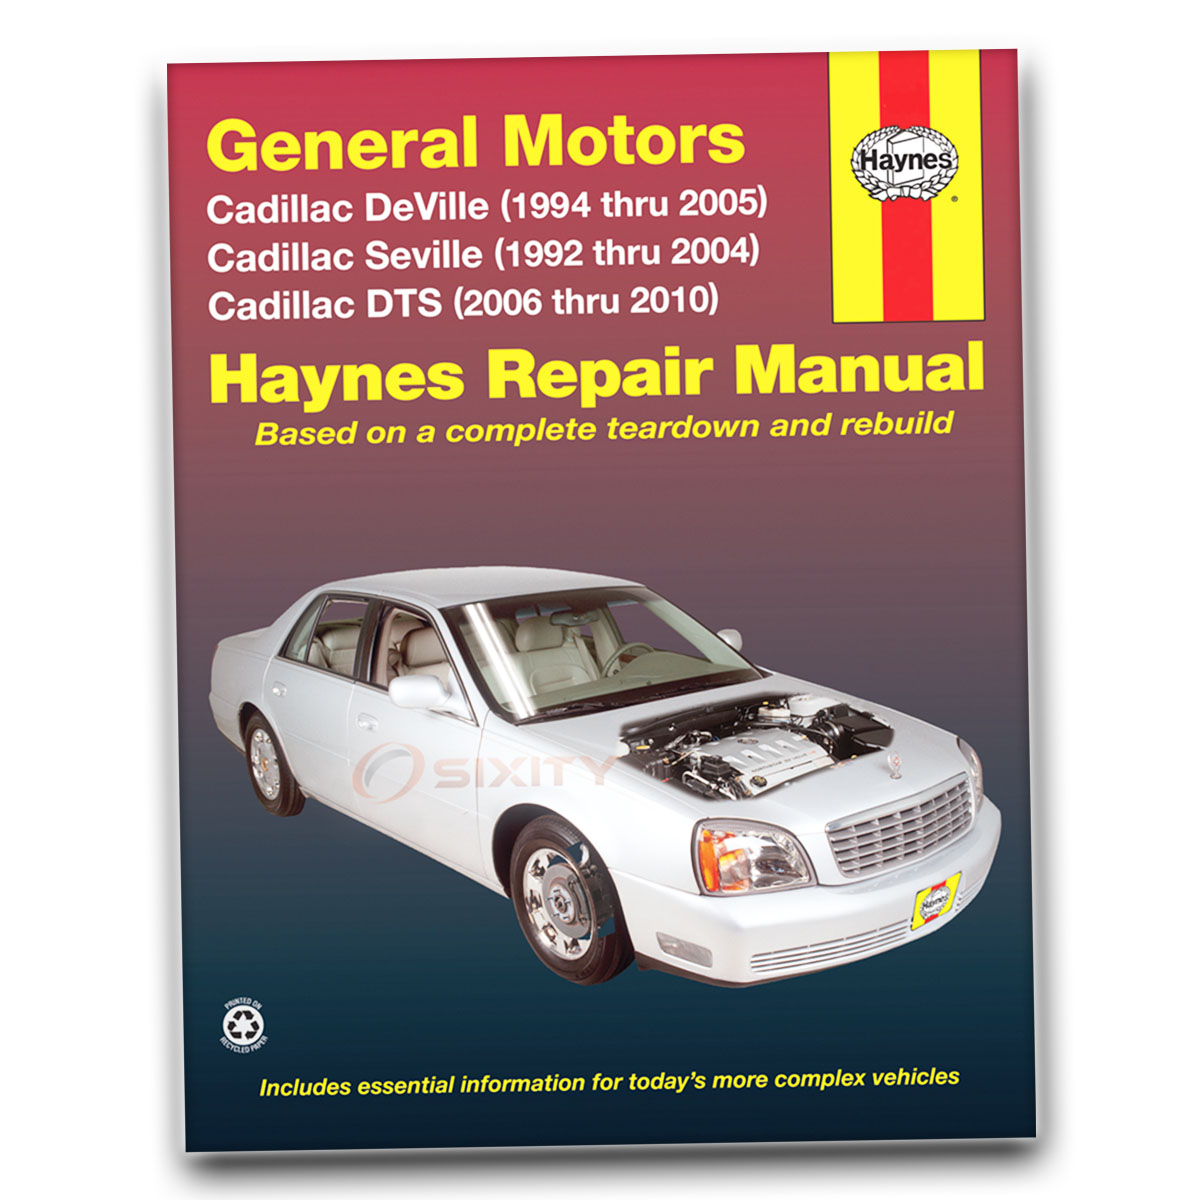 Cadillac seville haynes repair manual sls base sts shop service sx232 repair book fandeluxe Choice Image